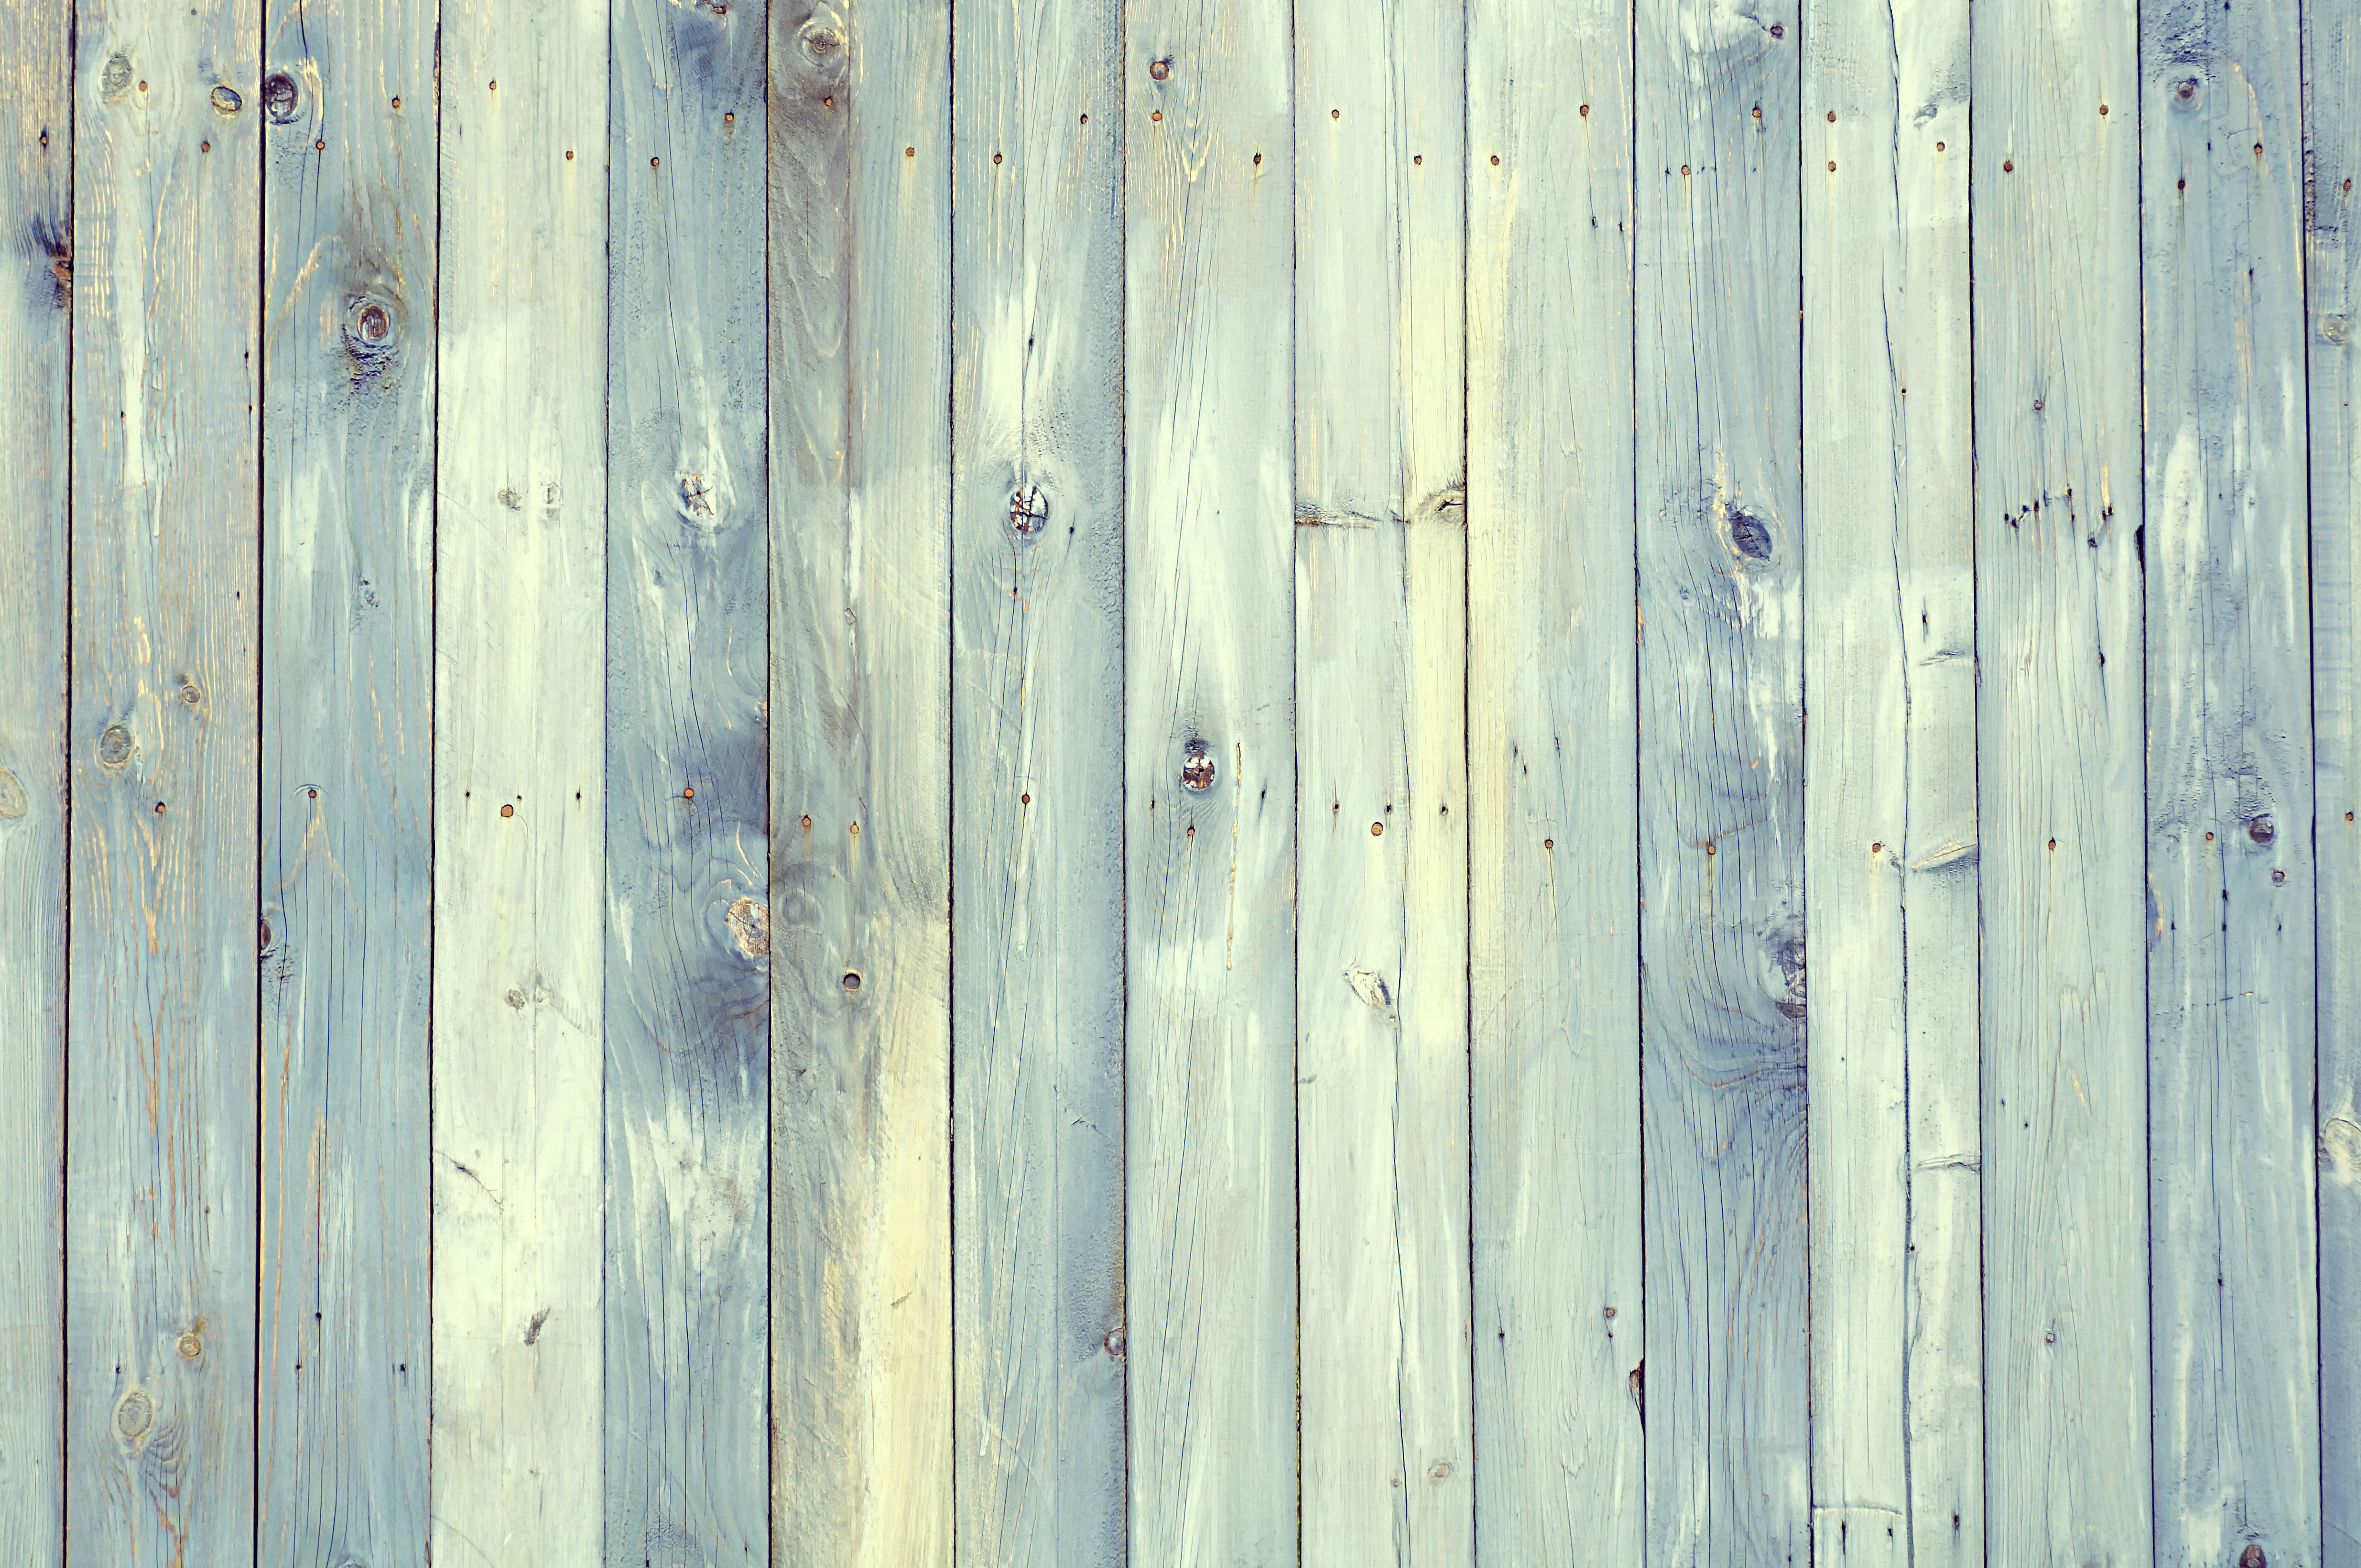 Wood 8k Ultra HD Wallpaper and Background | 8576x5696 | ID:592229